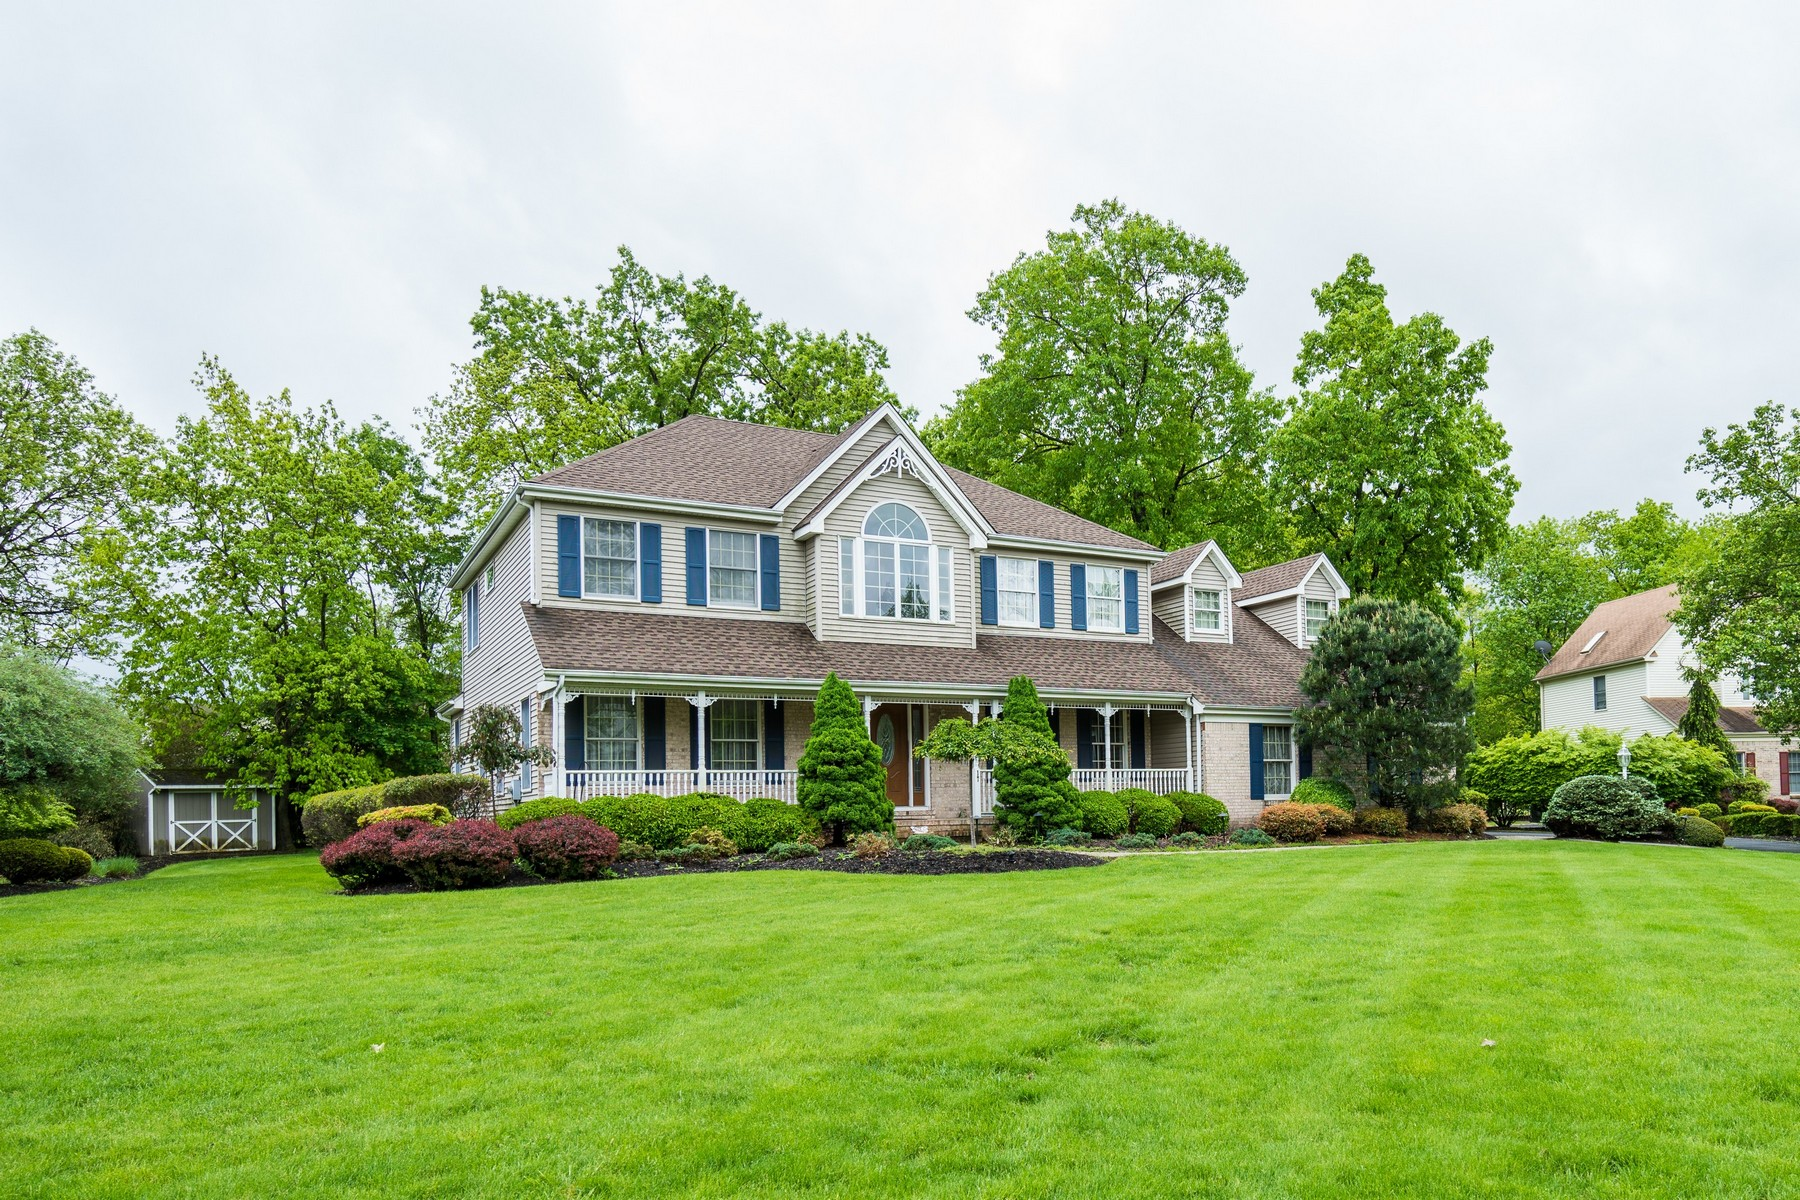 Single Family Homes for Sale at 17 Van Deripe Rd., Hillsborough Township 17 Van Deripe Rd. Hillsborough, New Jersey 08844 United States